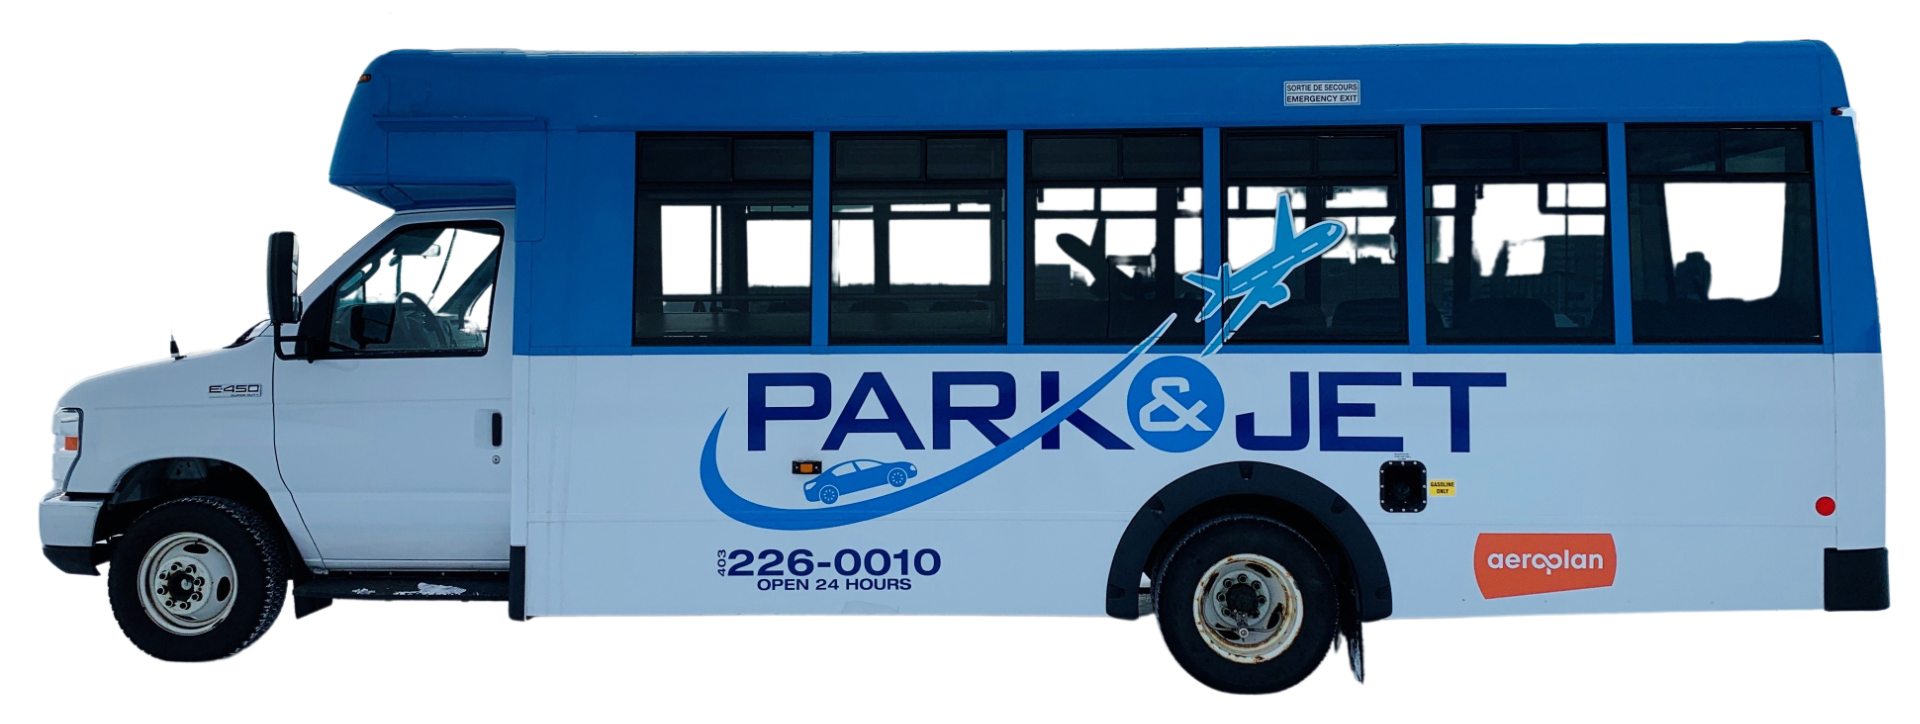 Park & Jet Calgary - Parking Shuttle Bus for YYC Airport